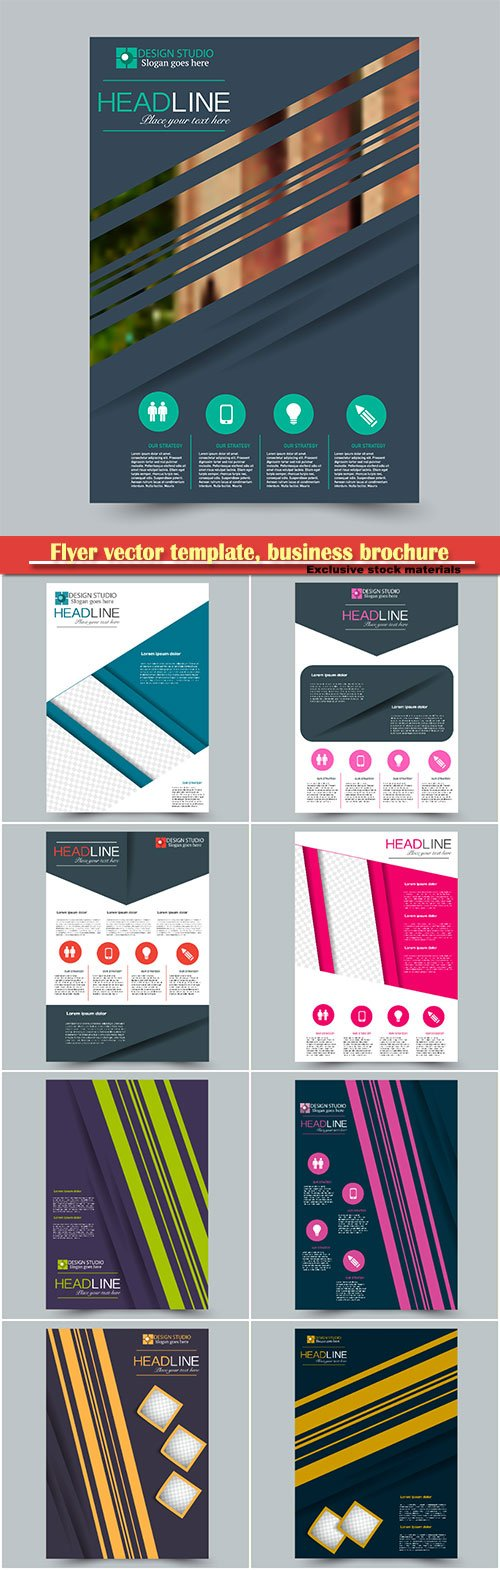 Flyer vector template, business brochure, magazine cover # 38